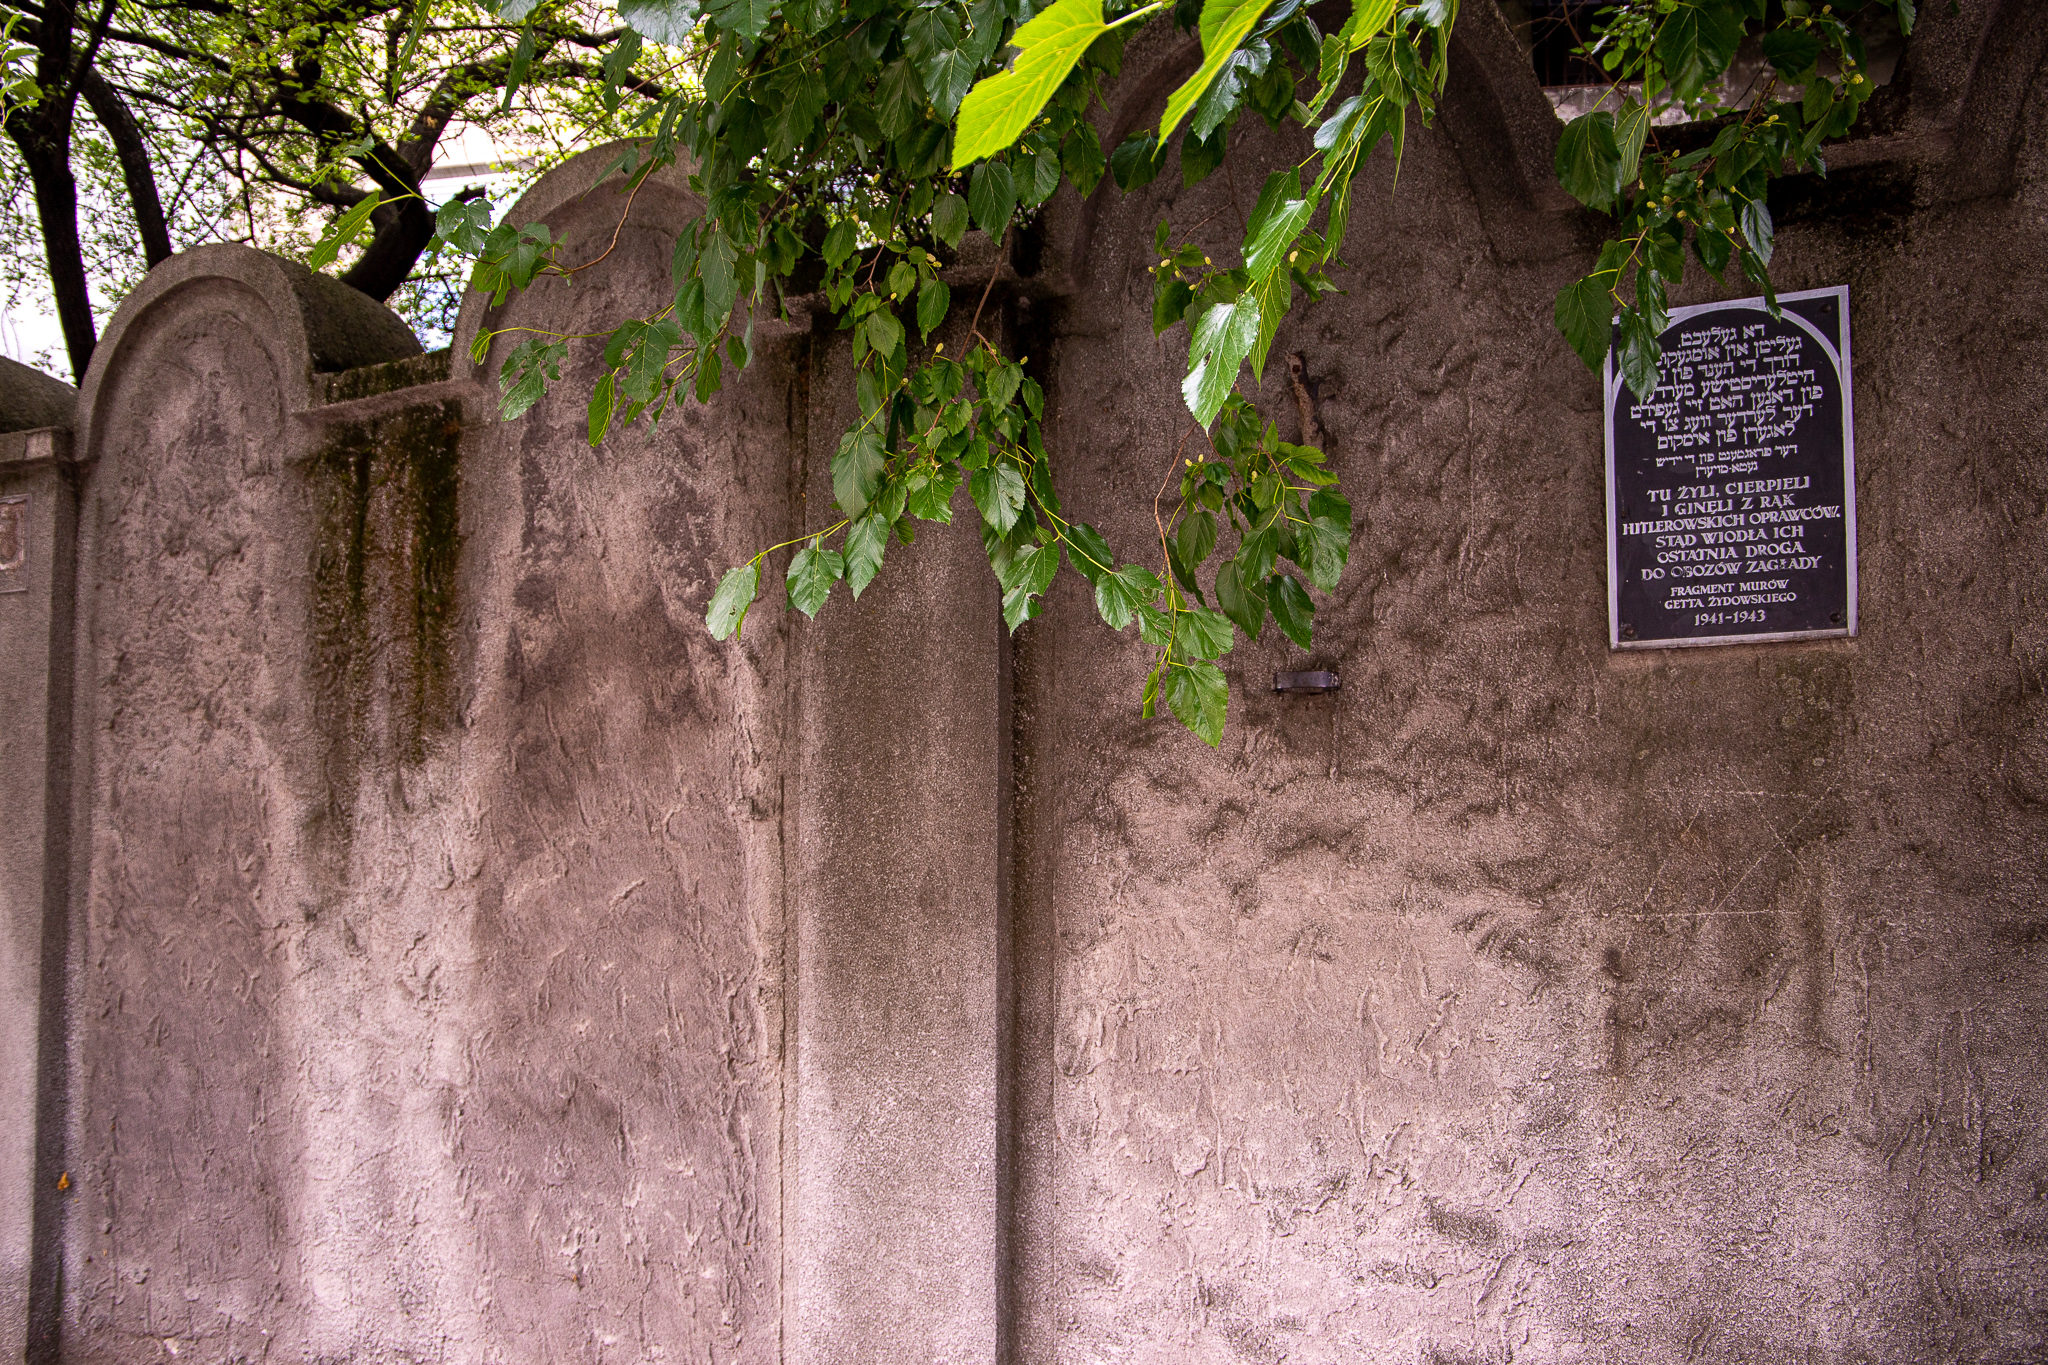 One of the last remaining sections of the ghetto wall